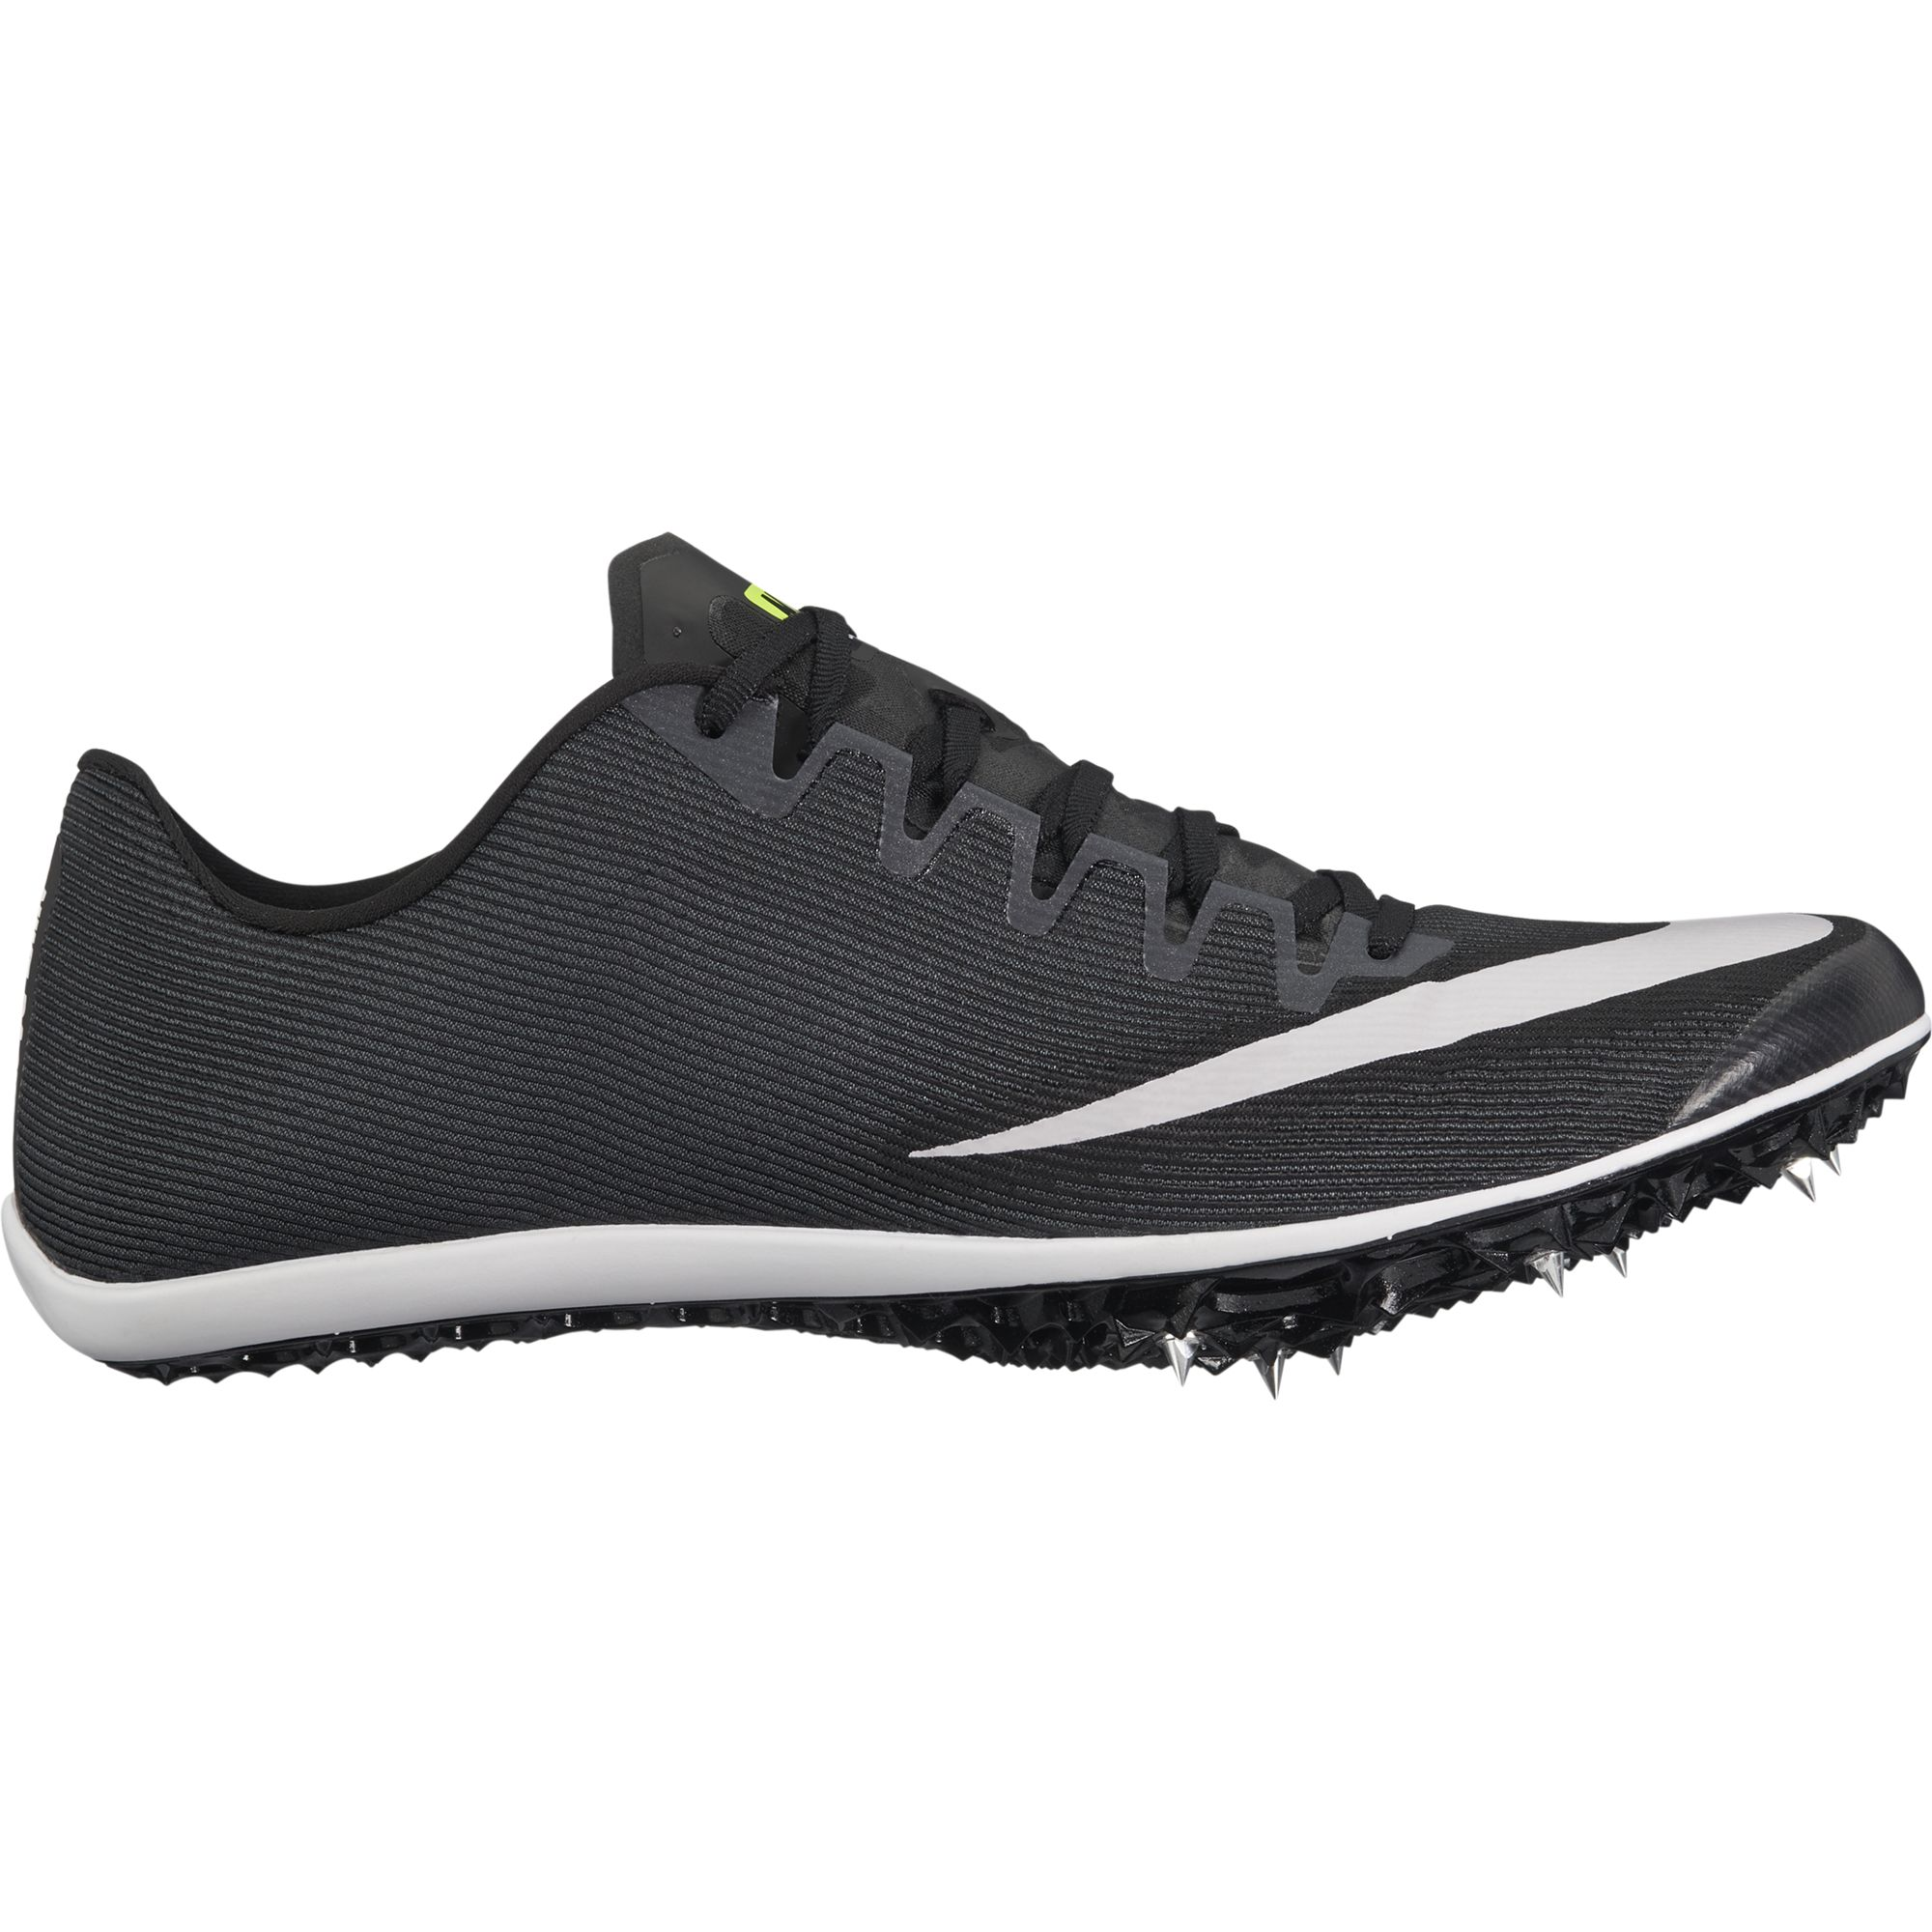 new arrival 4162c 6e12f ... Nike Zoom 400 Spikes. AA1205-001-PHSRH000-2000